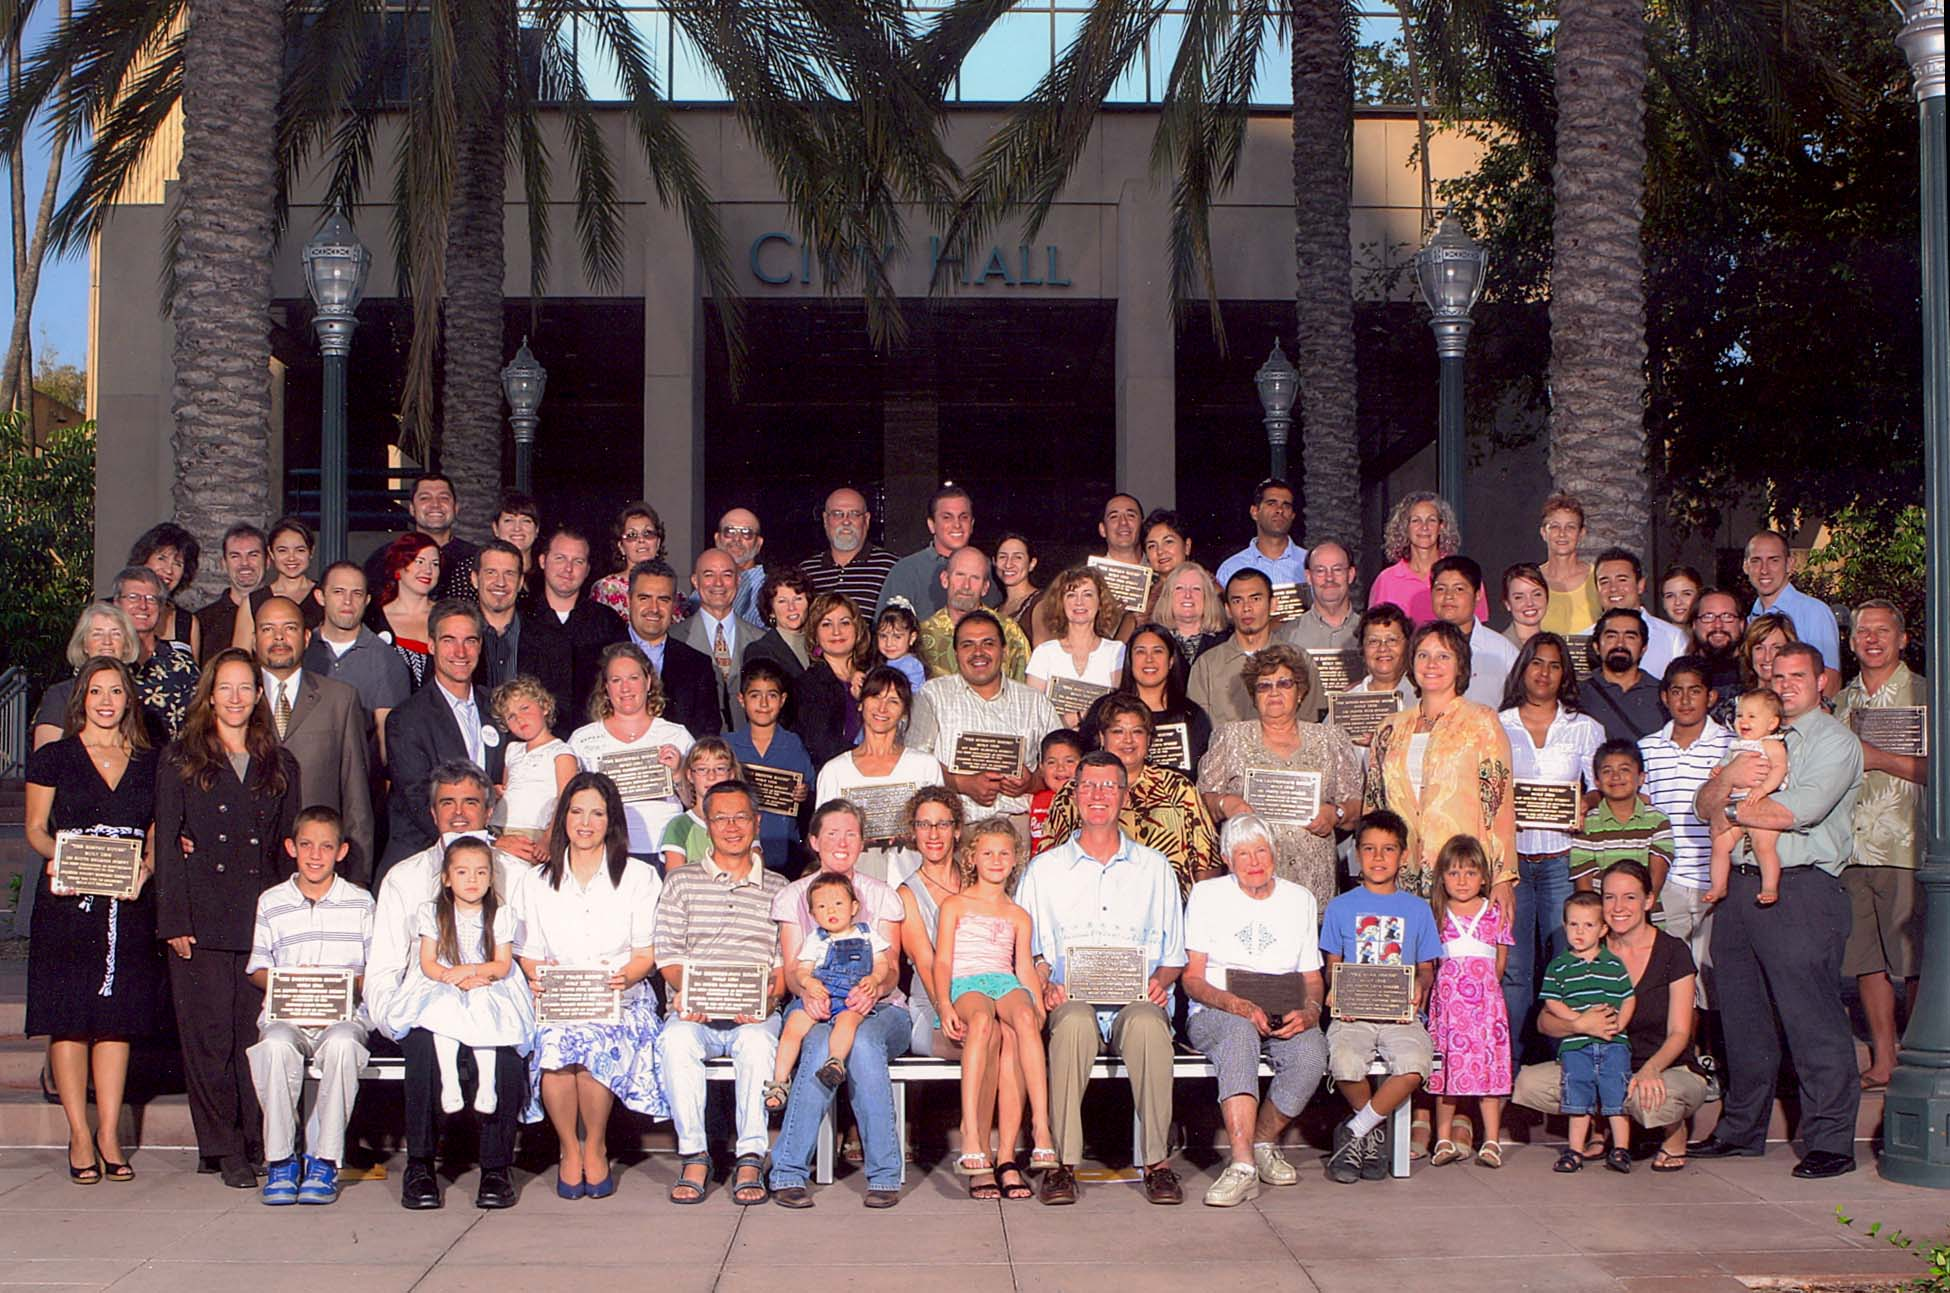 Group photo with the onwers holding their plaques for the Mills Act Participating Properties from 2006